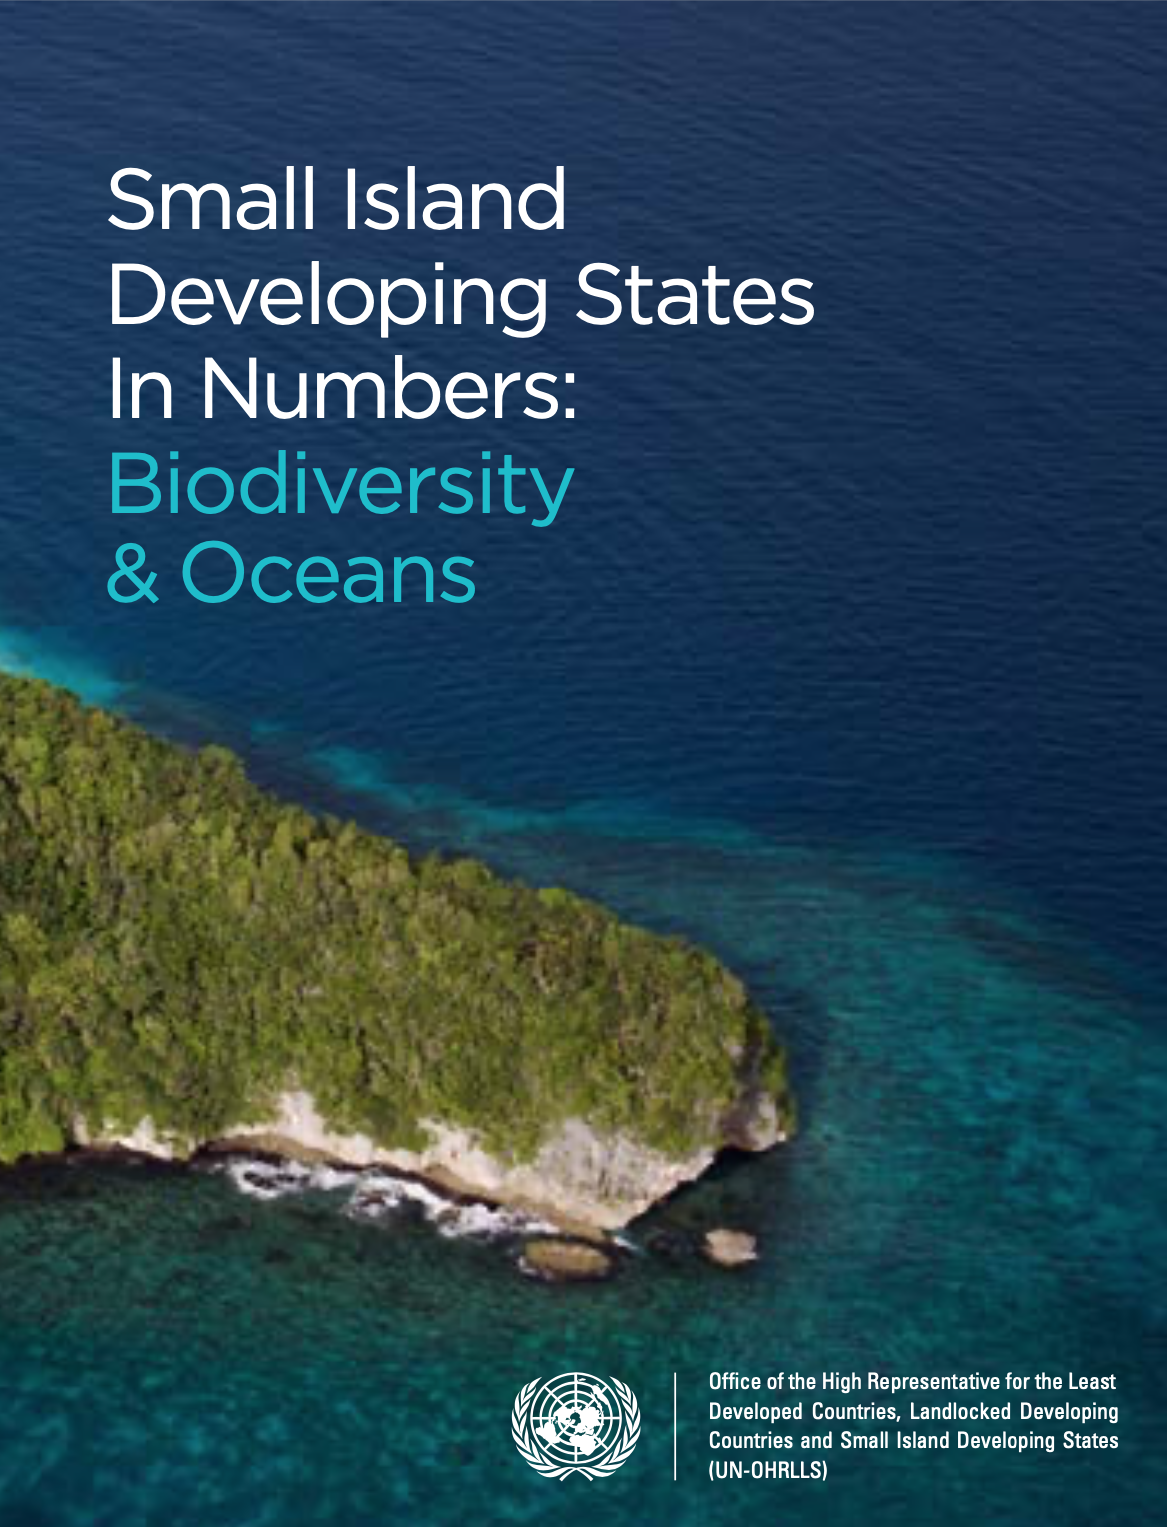 Cover of Small Island Developing States In Numbers: Biodiversity & Oceans (2017)